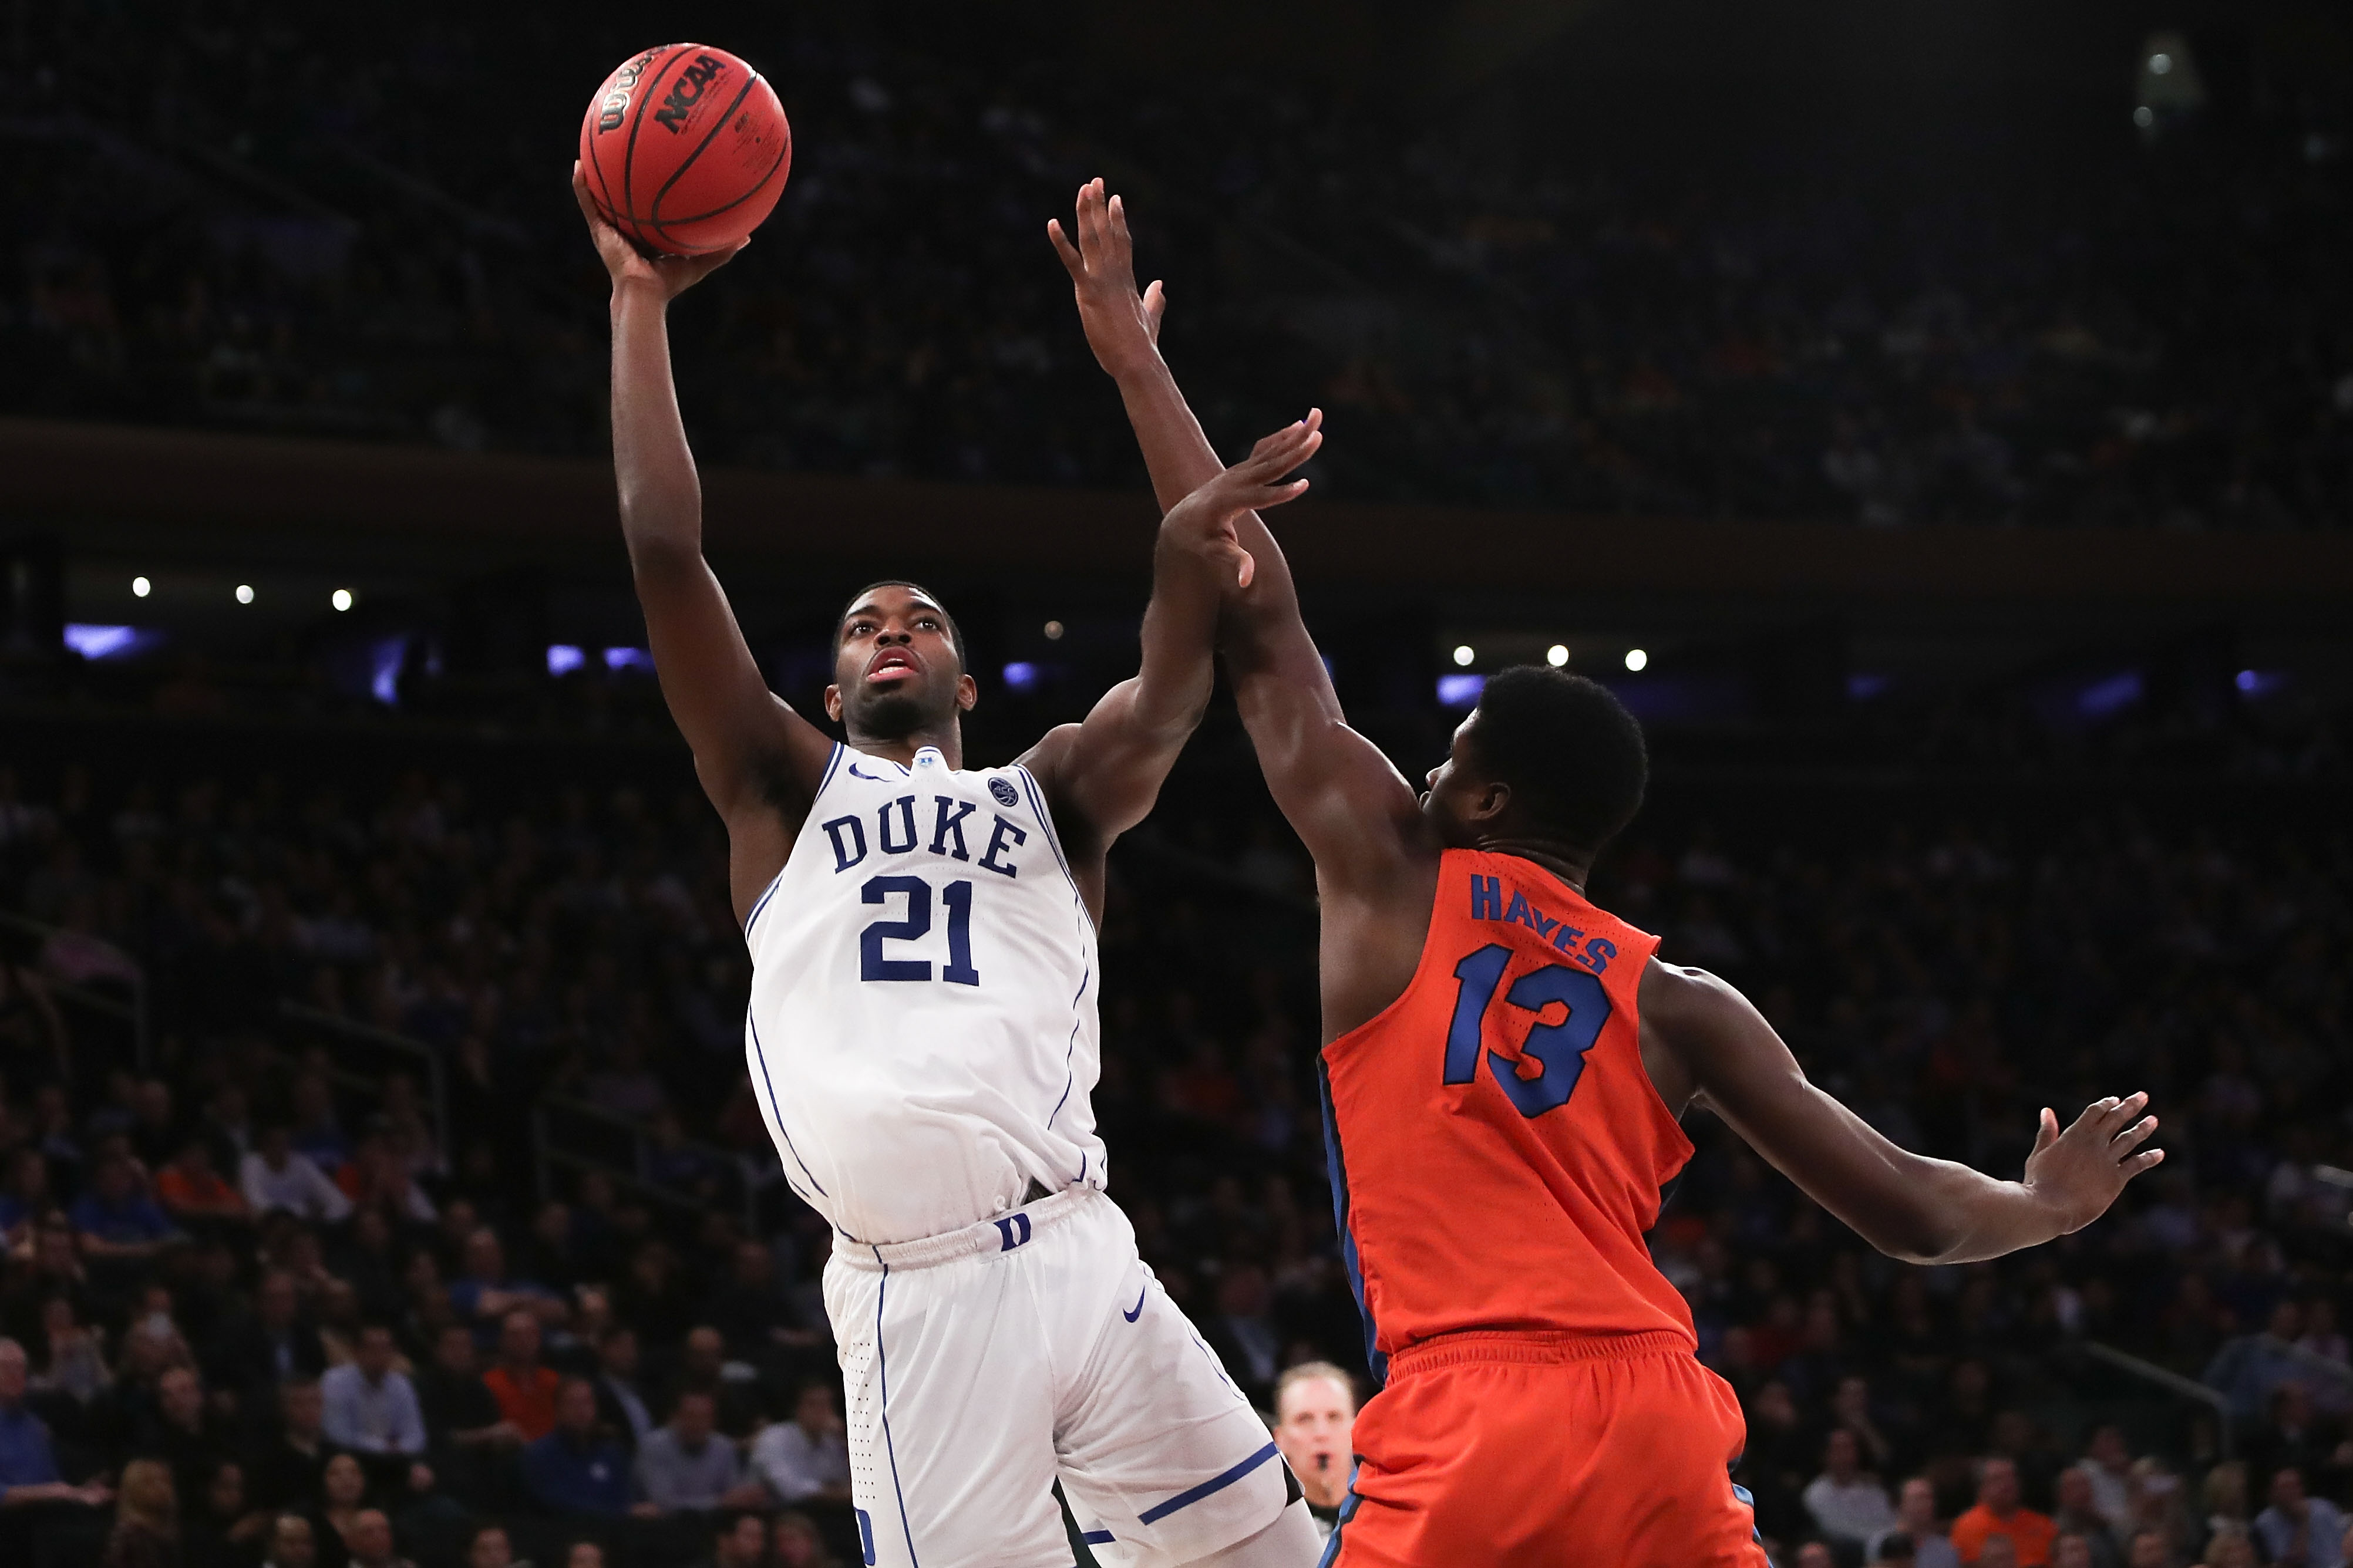 NEW YORK, NY - DECEMBER 06:  Amile Jefferson #21 of the Duke Blue Devils puts up a shot against the Florida Gators in the second half during the Jimmy V Classic at Madison Square Garden on December 6, 2016 in New York City.  (Photo by Michael Reaves/Getty Images)